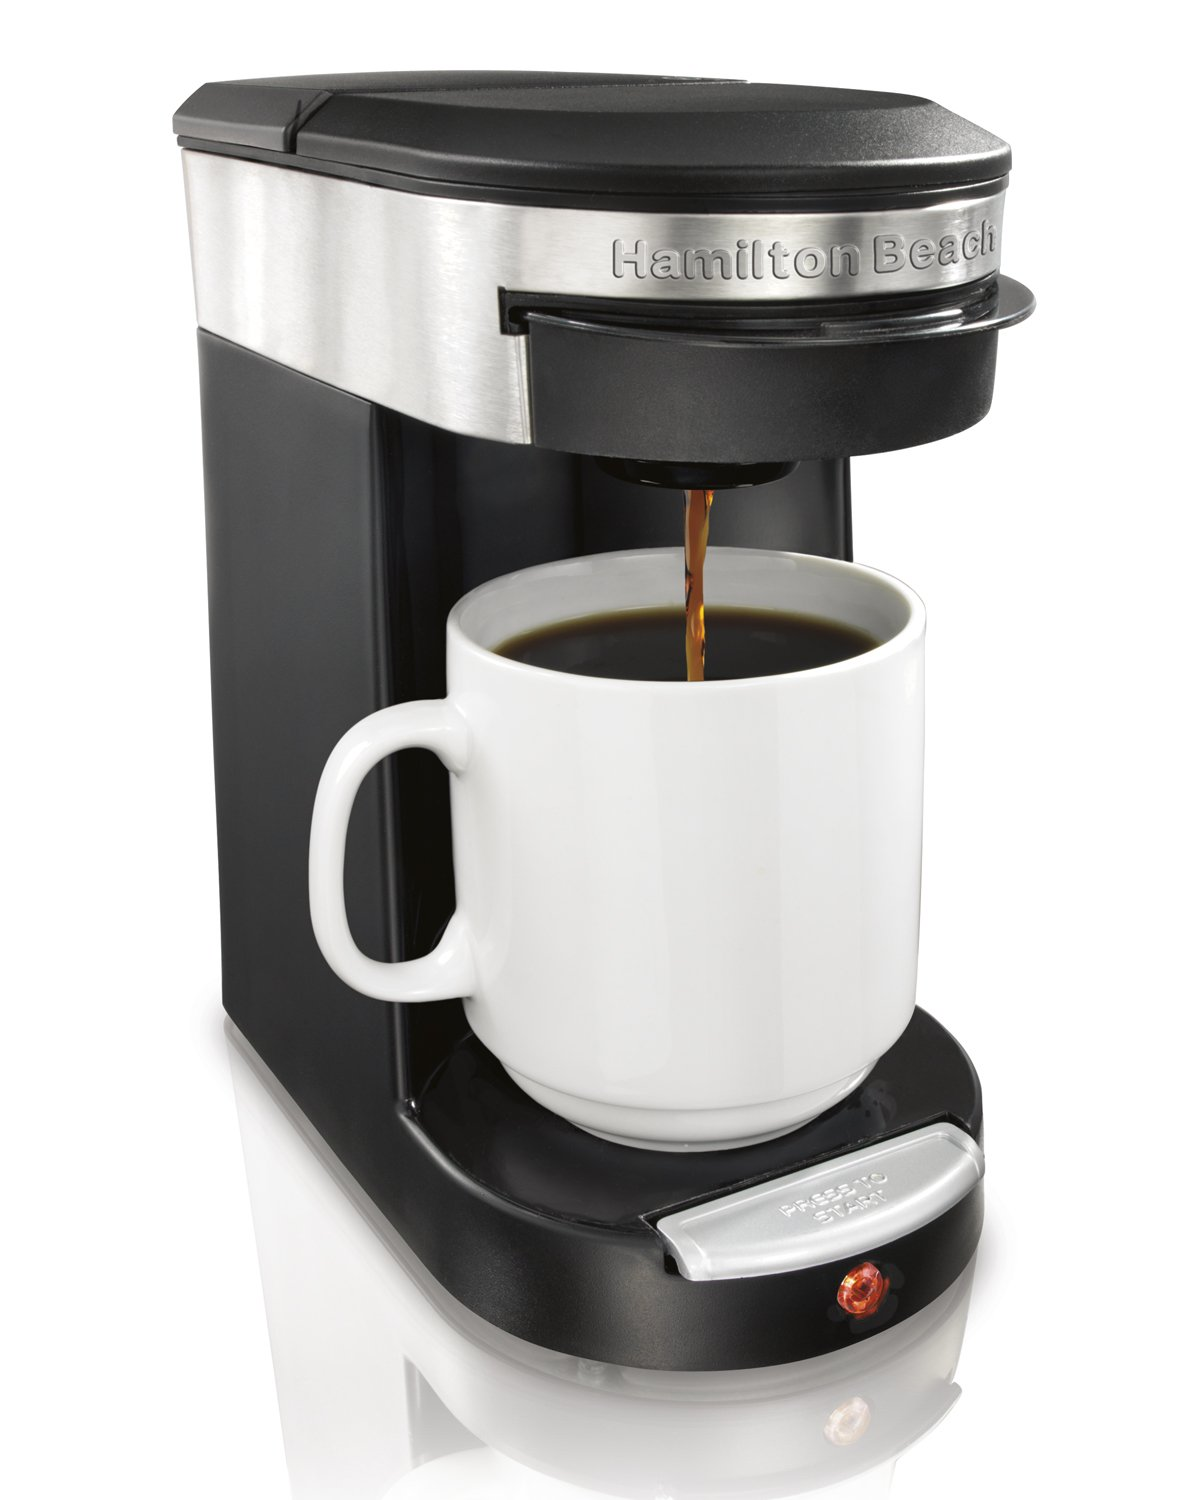 Easy One Cup Coffee Maker : NEW! Fresh Coffee Maker 1 Cup Brewer by Hamilton Beach Fast Easy Clean Kitchen eBay